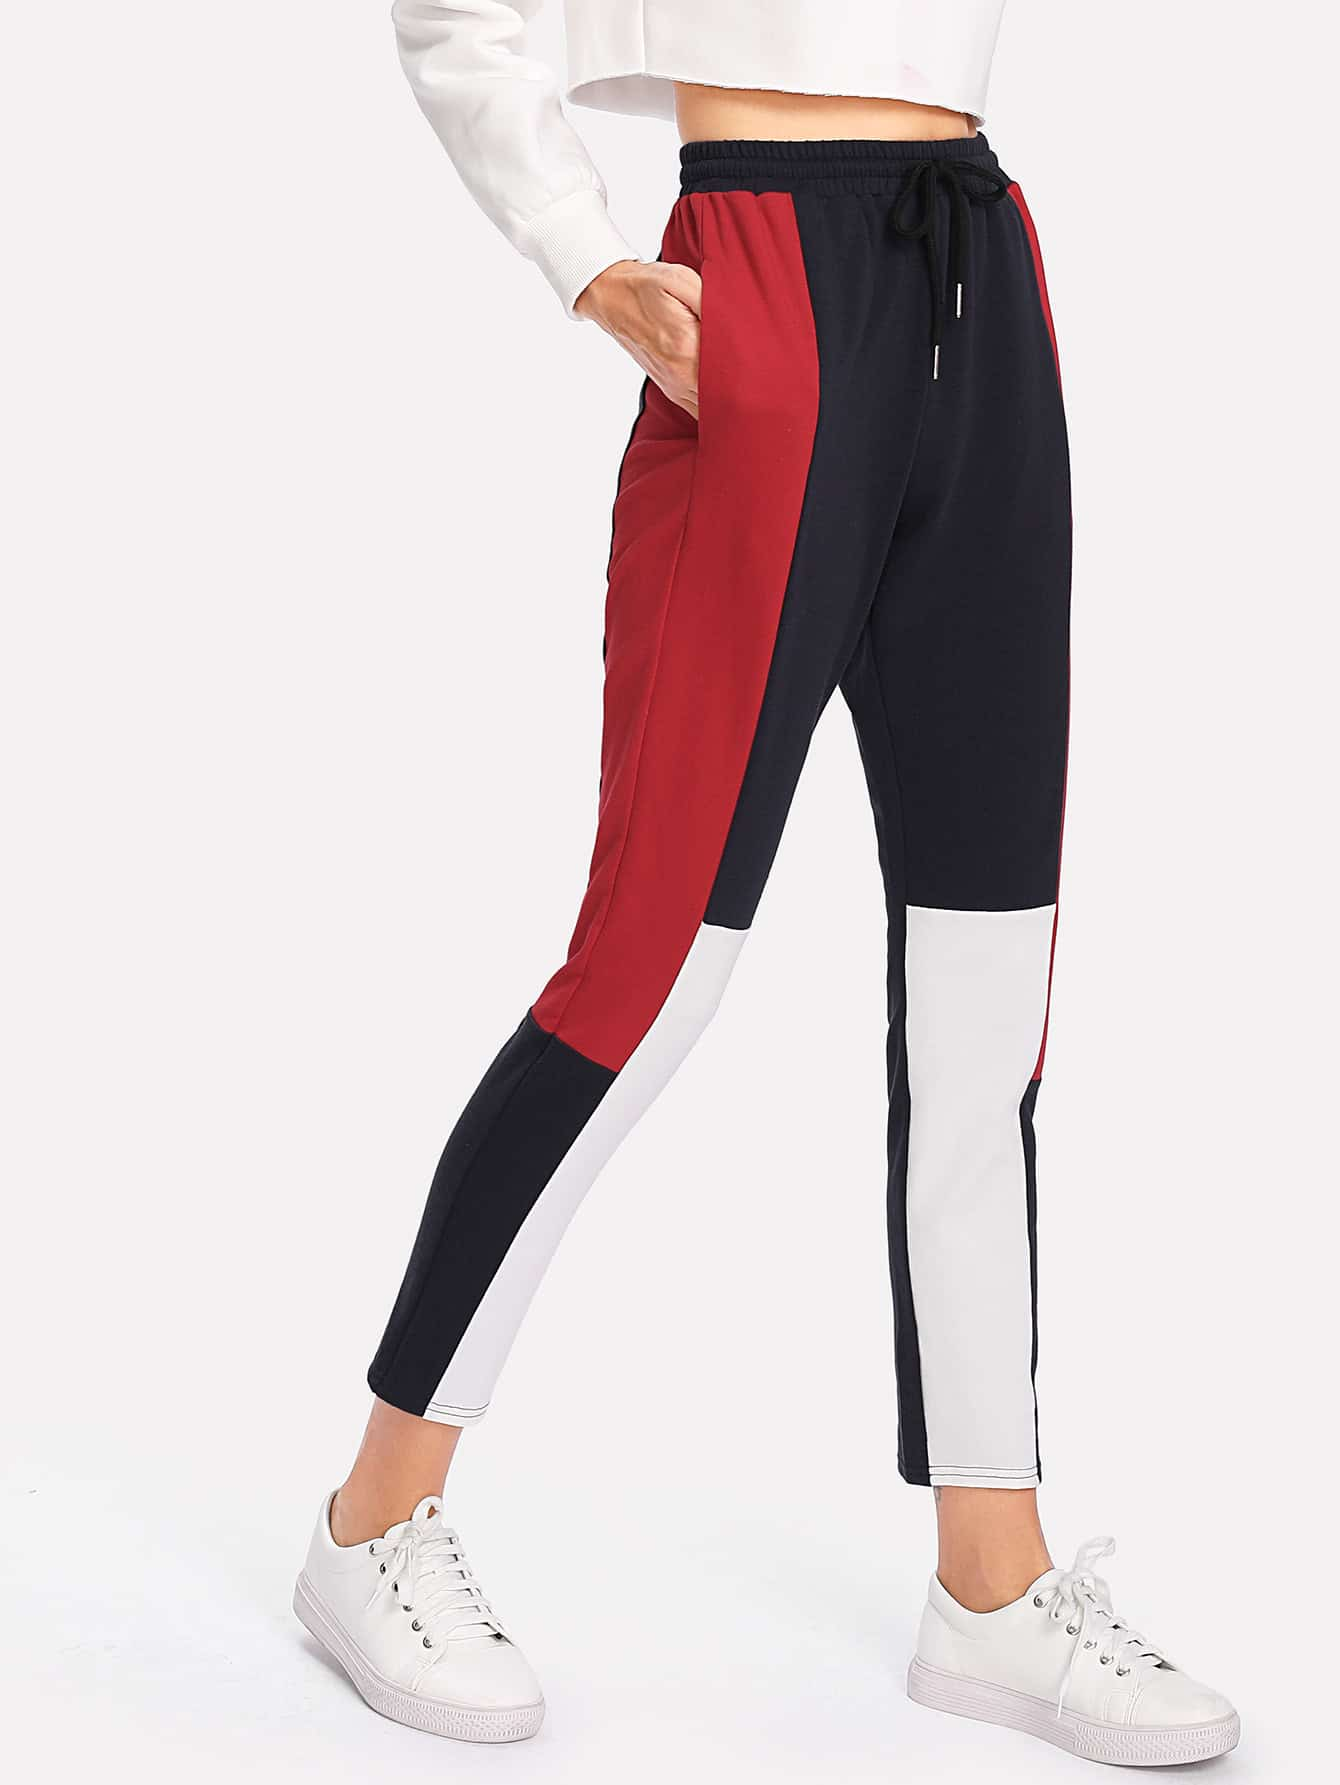 Color Block Sweatpants irf5305 irf5305pbf to 220 31a 55v